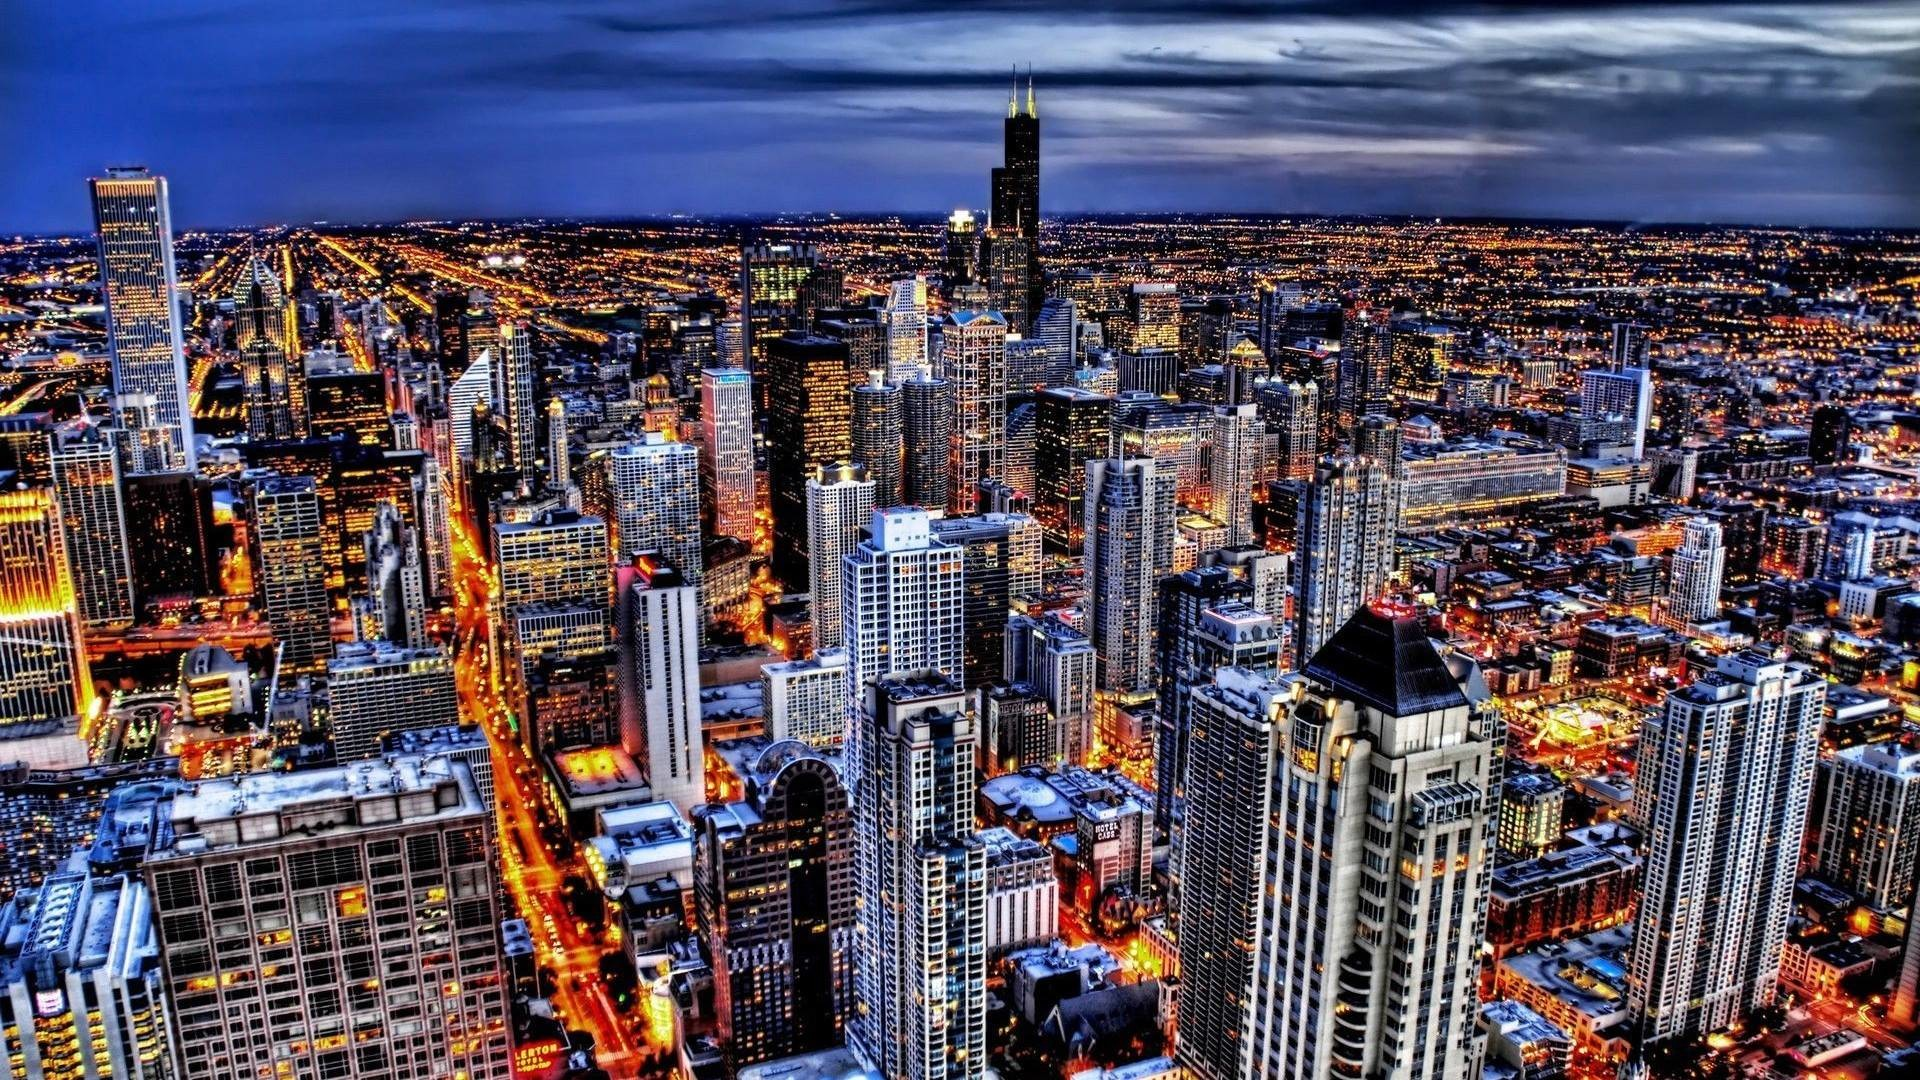 Wallpaper of old chicago Stock Free Images